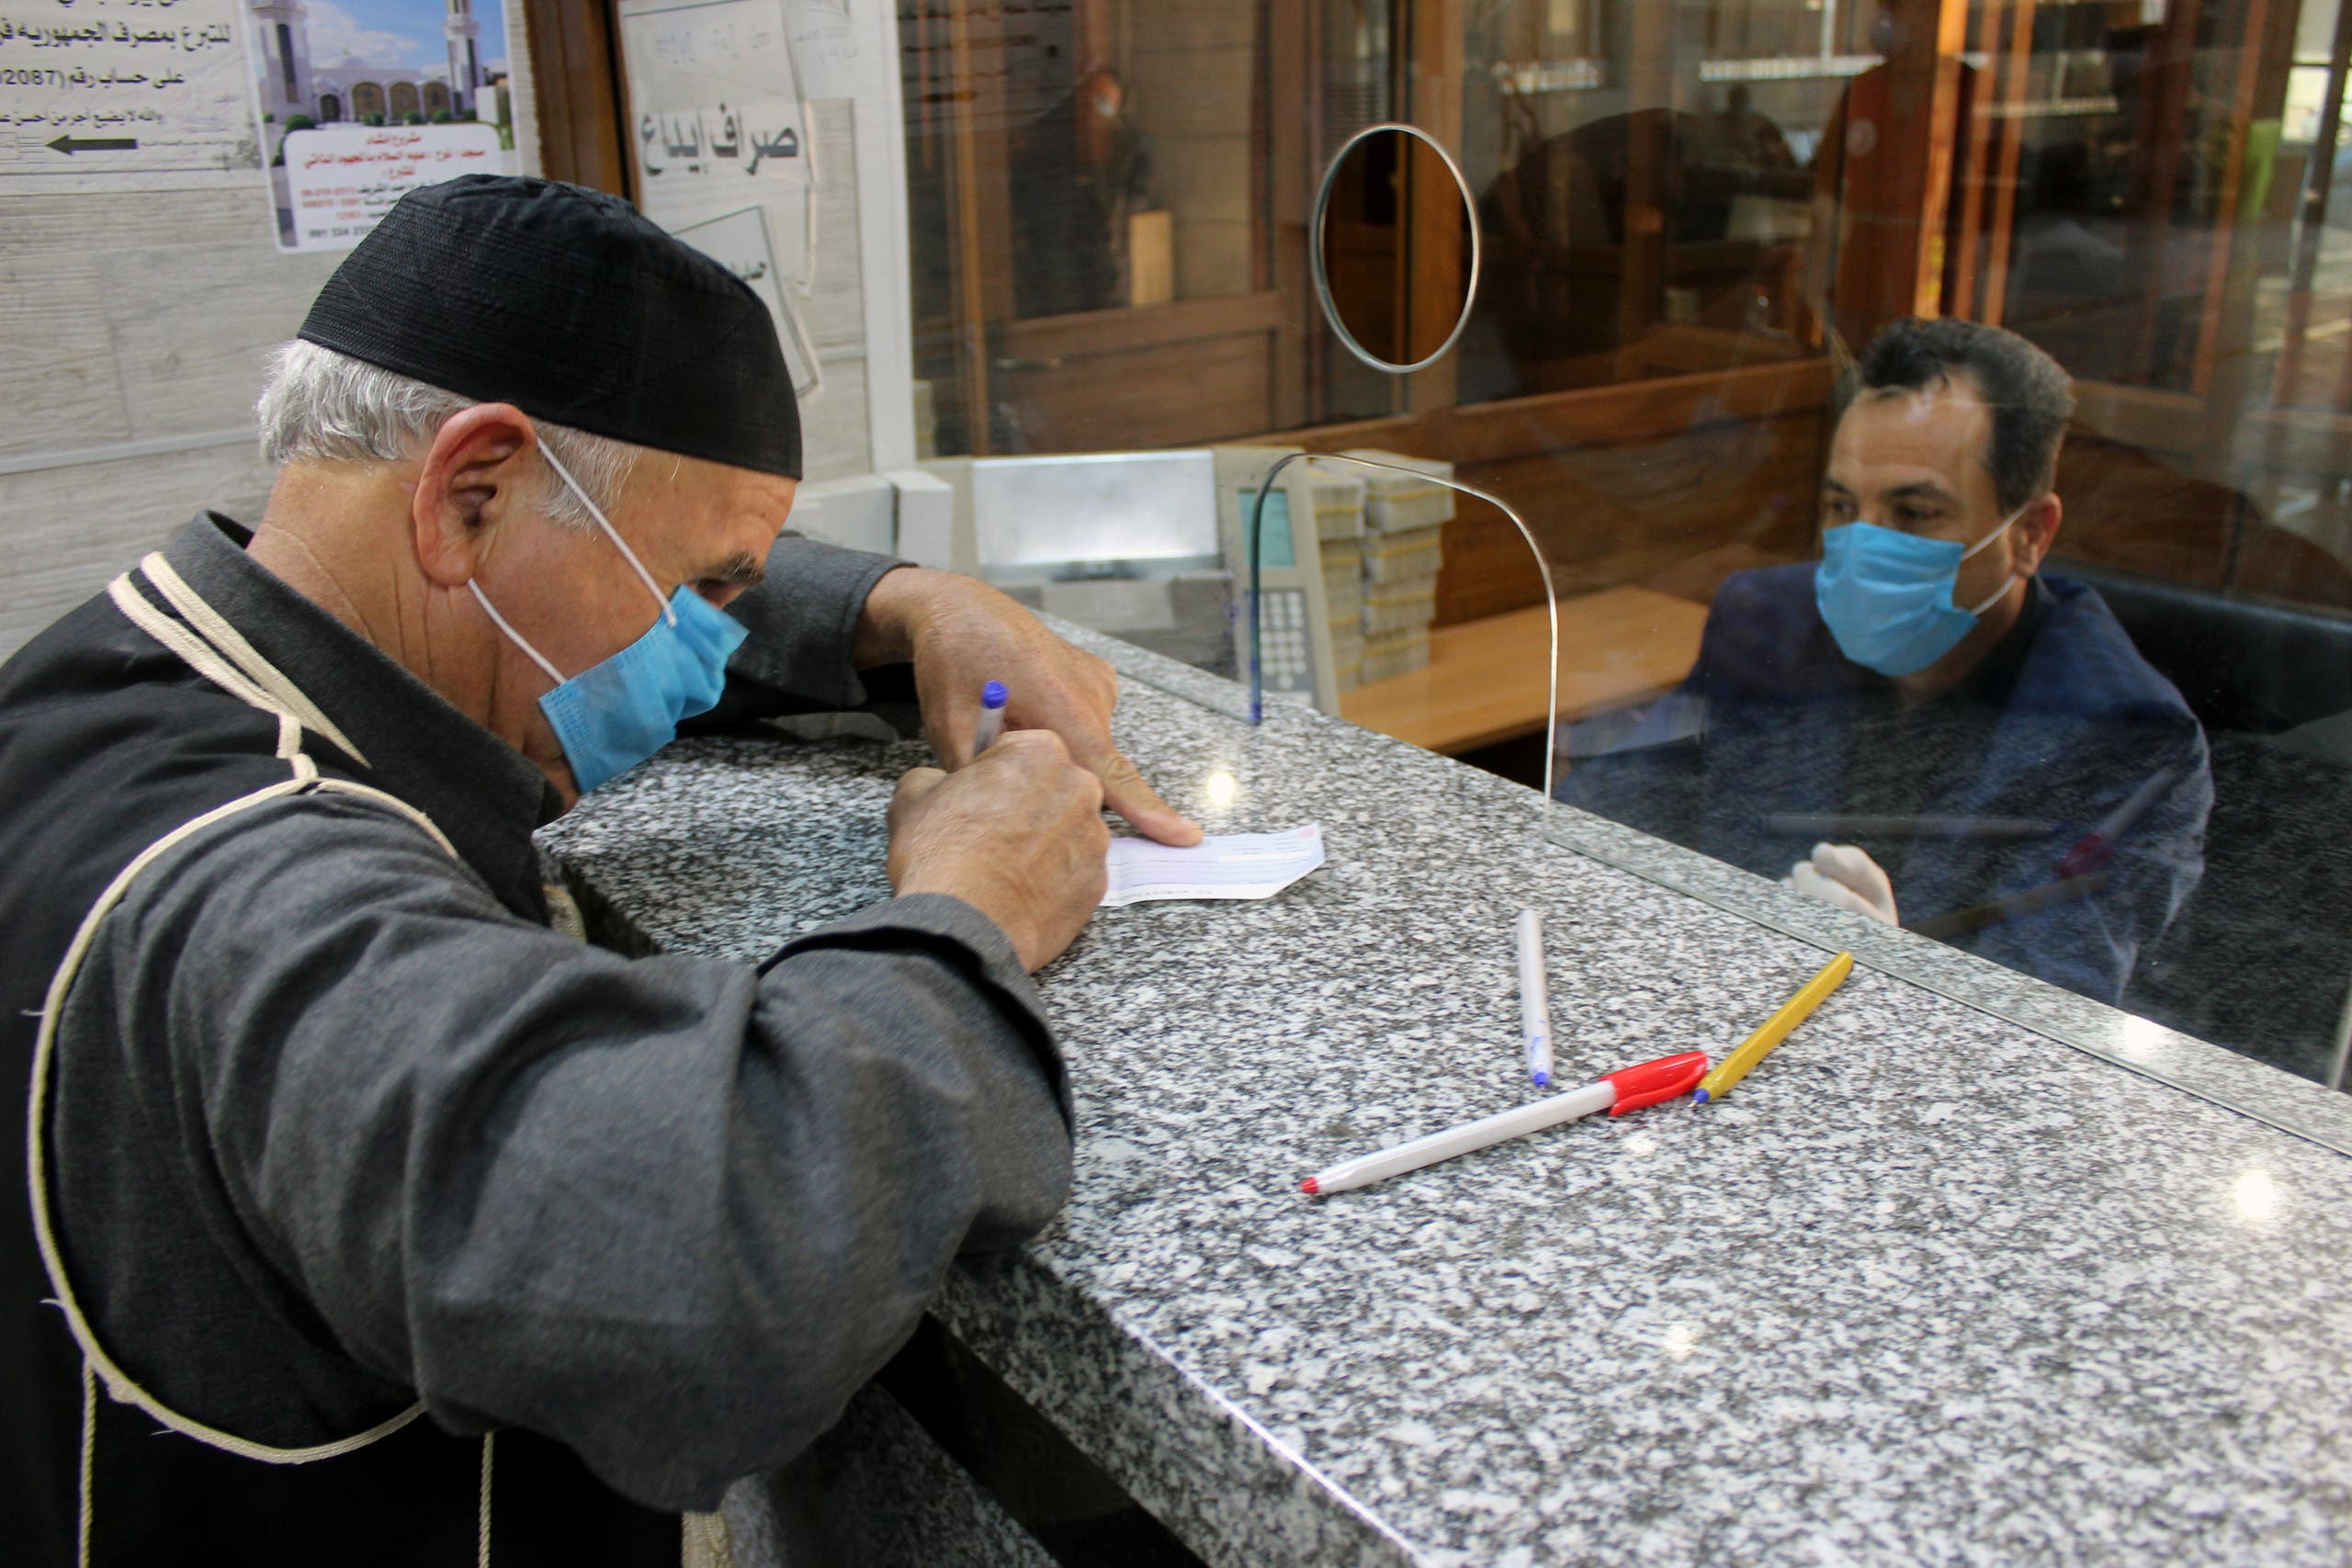 Men wear face masks at a bank in Libya, March 22. (Reuters)